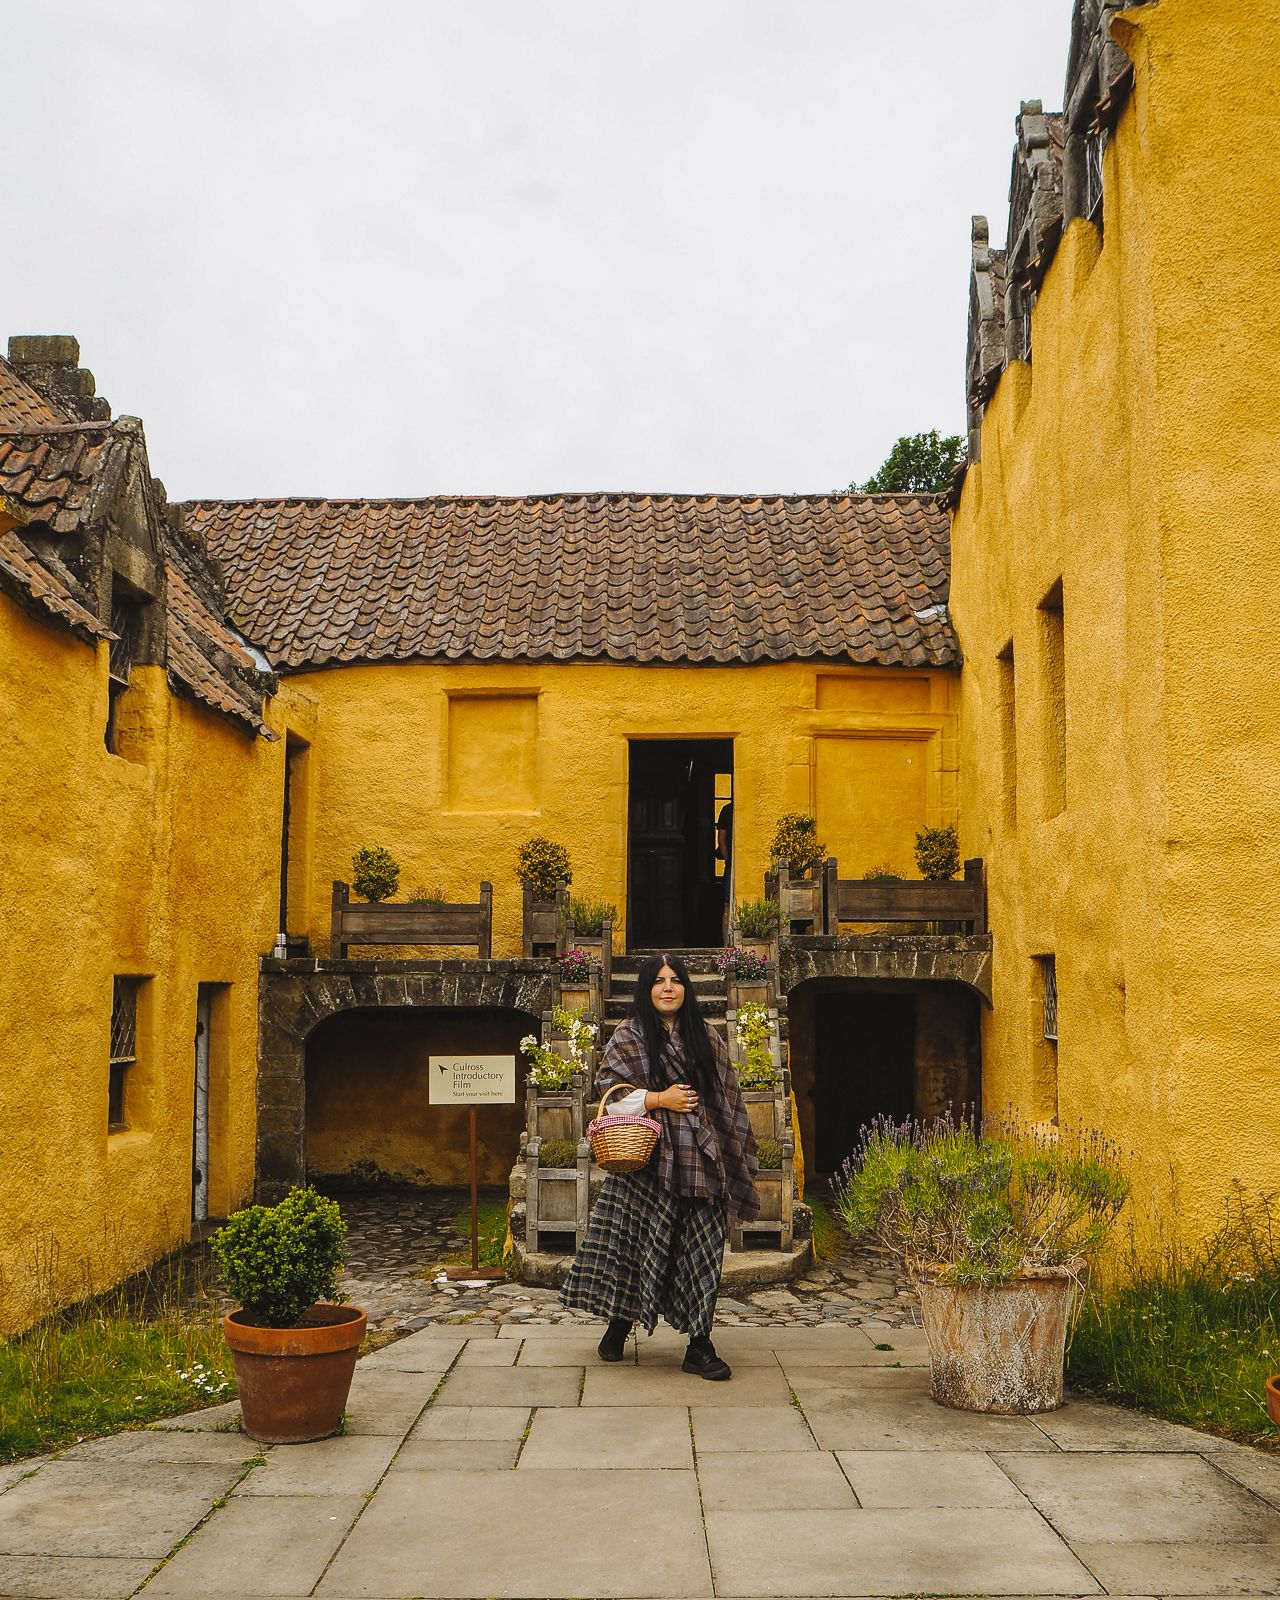 8 CULROSS OUTLANDER LOCATIONS YOU MUST VISIT & THINGS TO